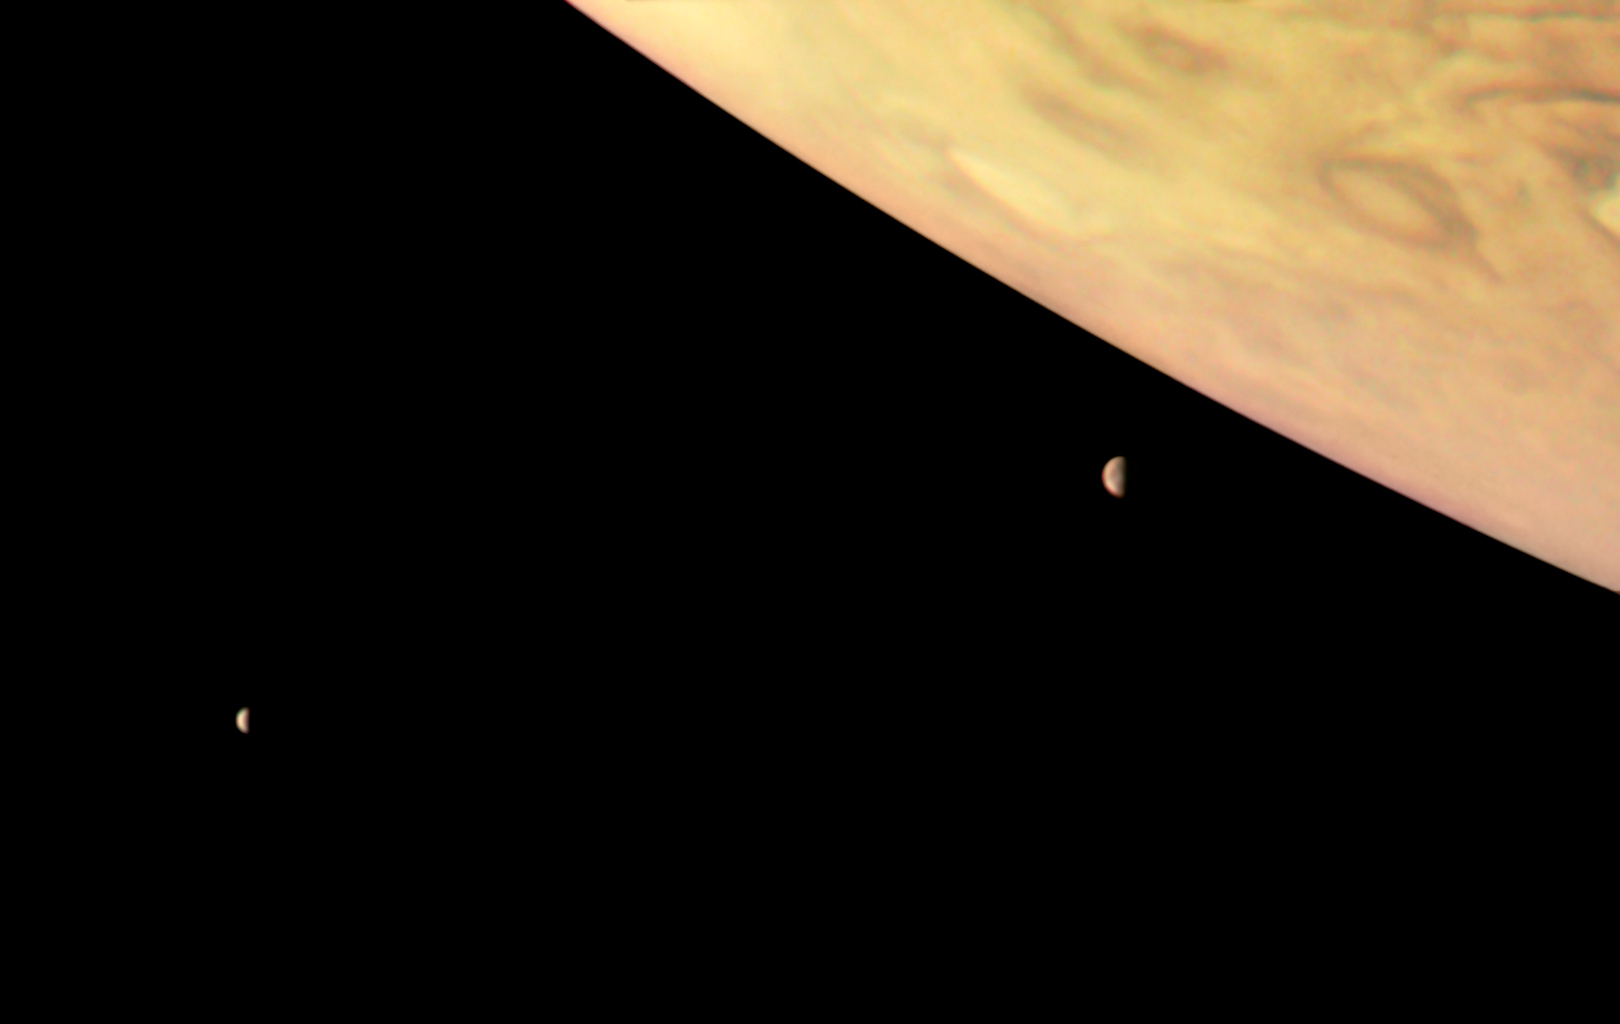 This color-enhanced image of Jupiter and two of its largest moons, Io and Europa, was captured by NASA's Juno spacecraft as it performed its eighth flyby of the gas giant planet.